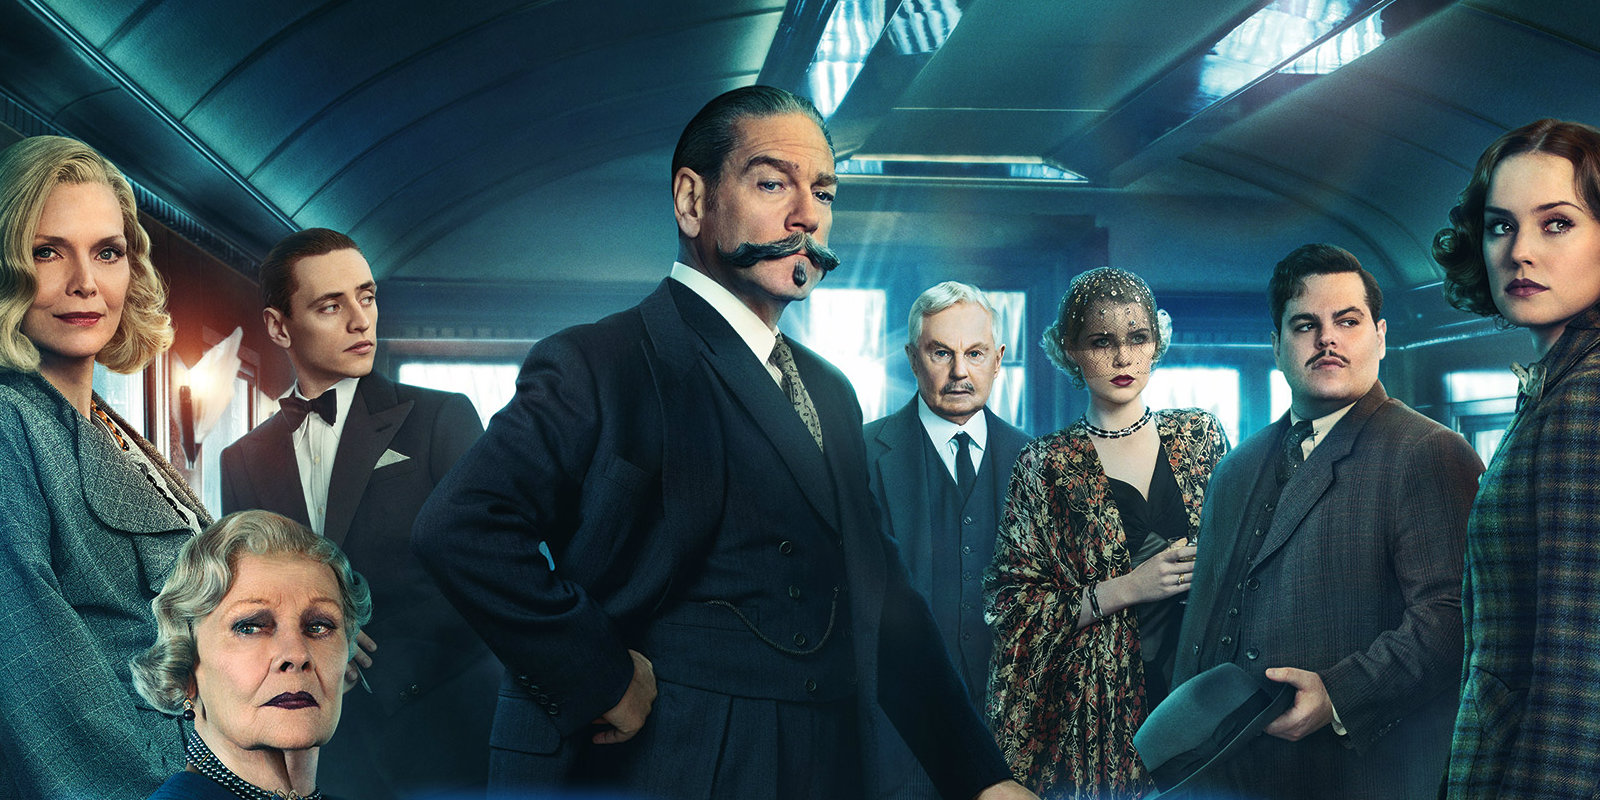 murder on the orient express Critics consensus: stylish production and an all-star ensemble keep this murder on the orient express from running off the rails, even if it never quite builds up to its classic.